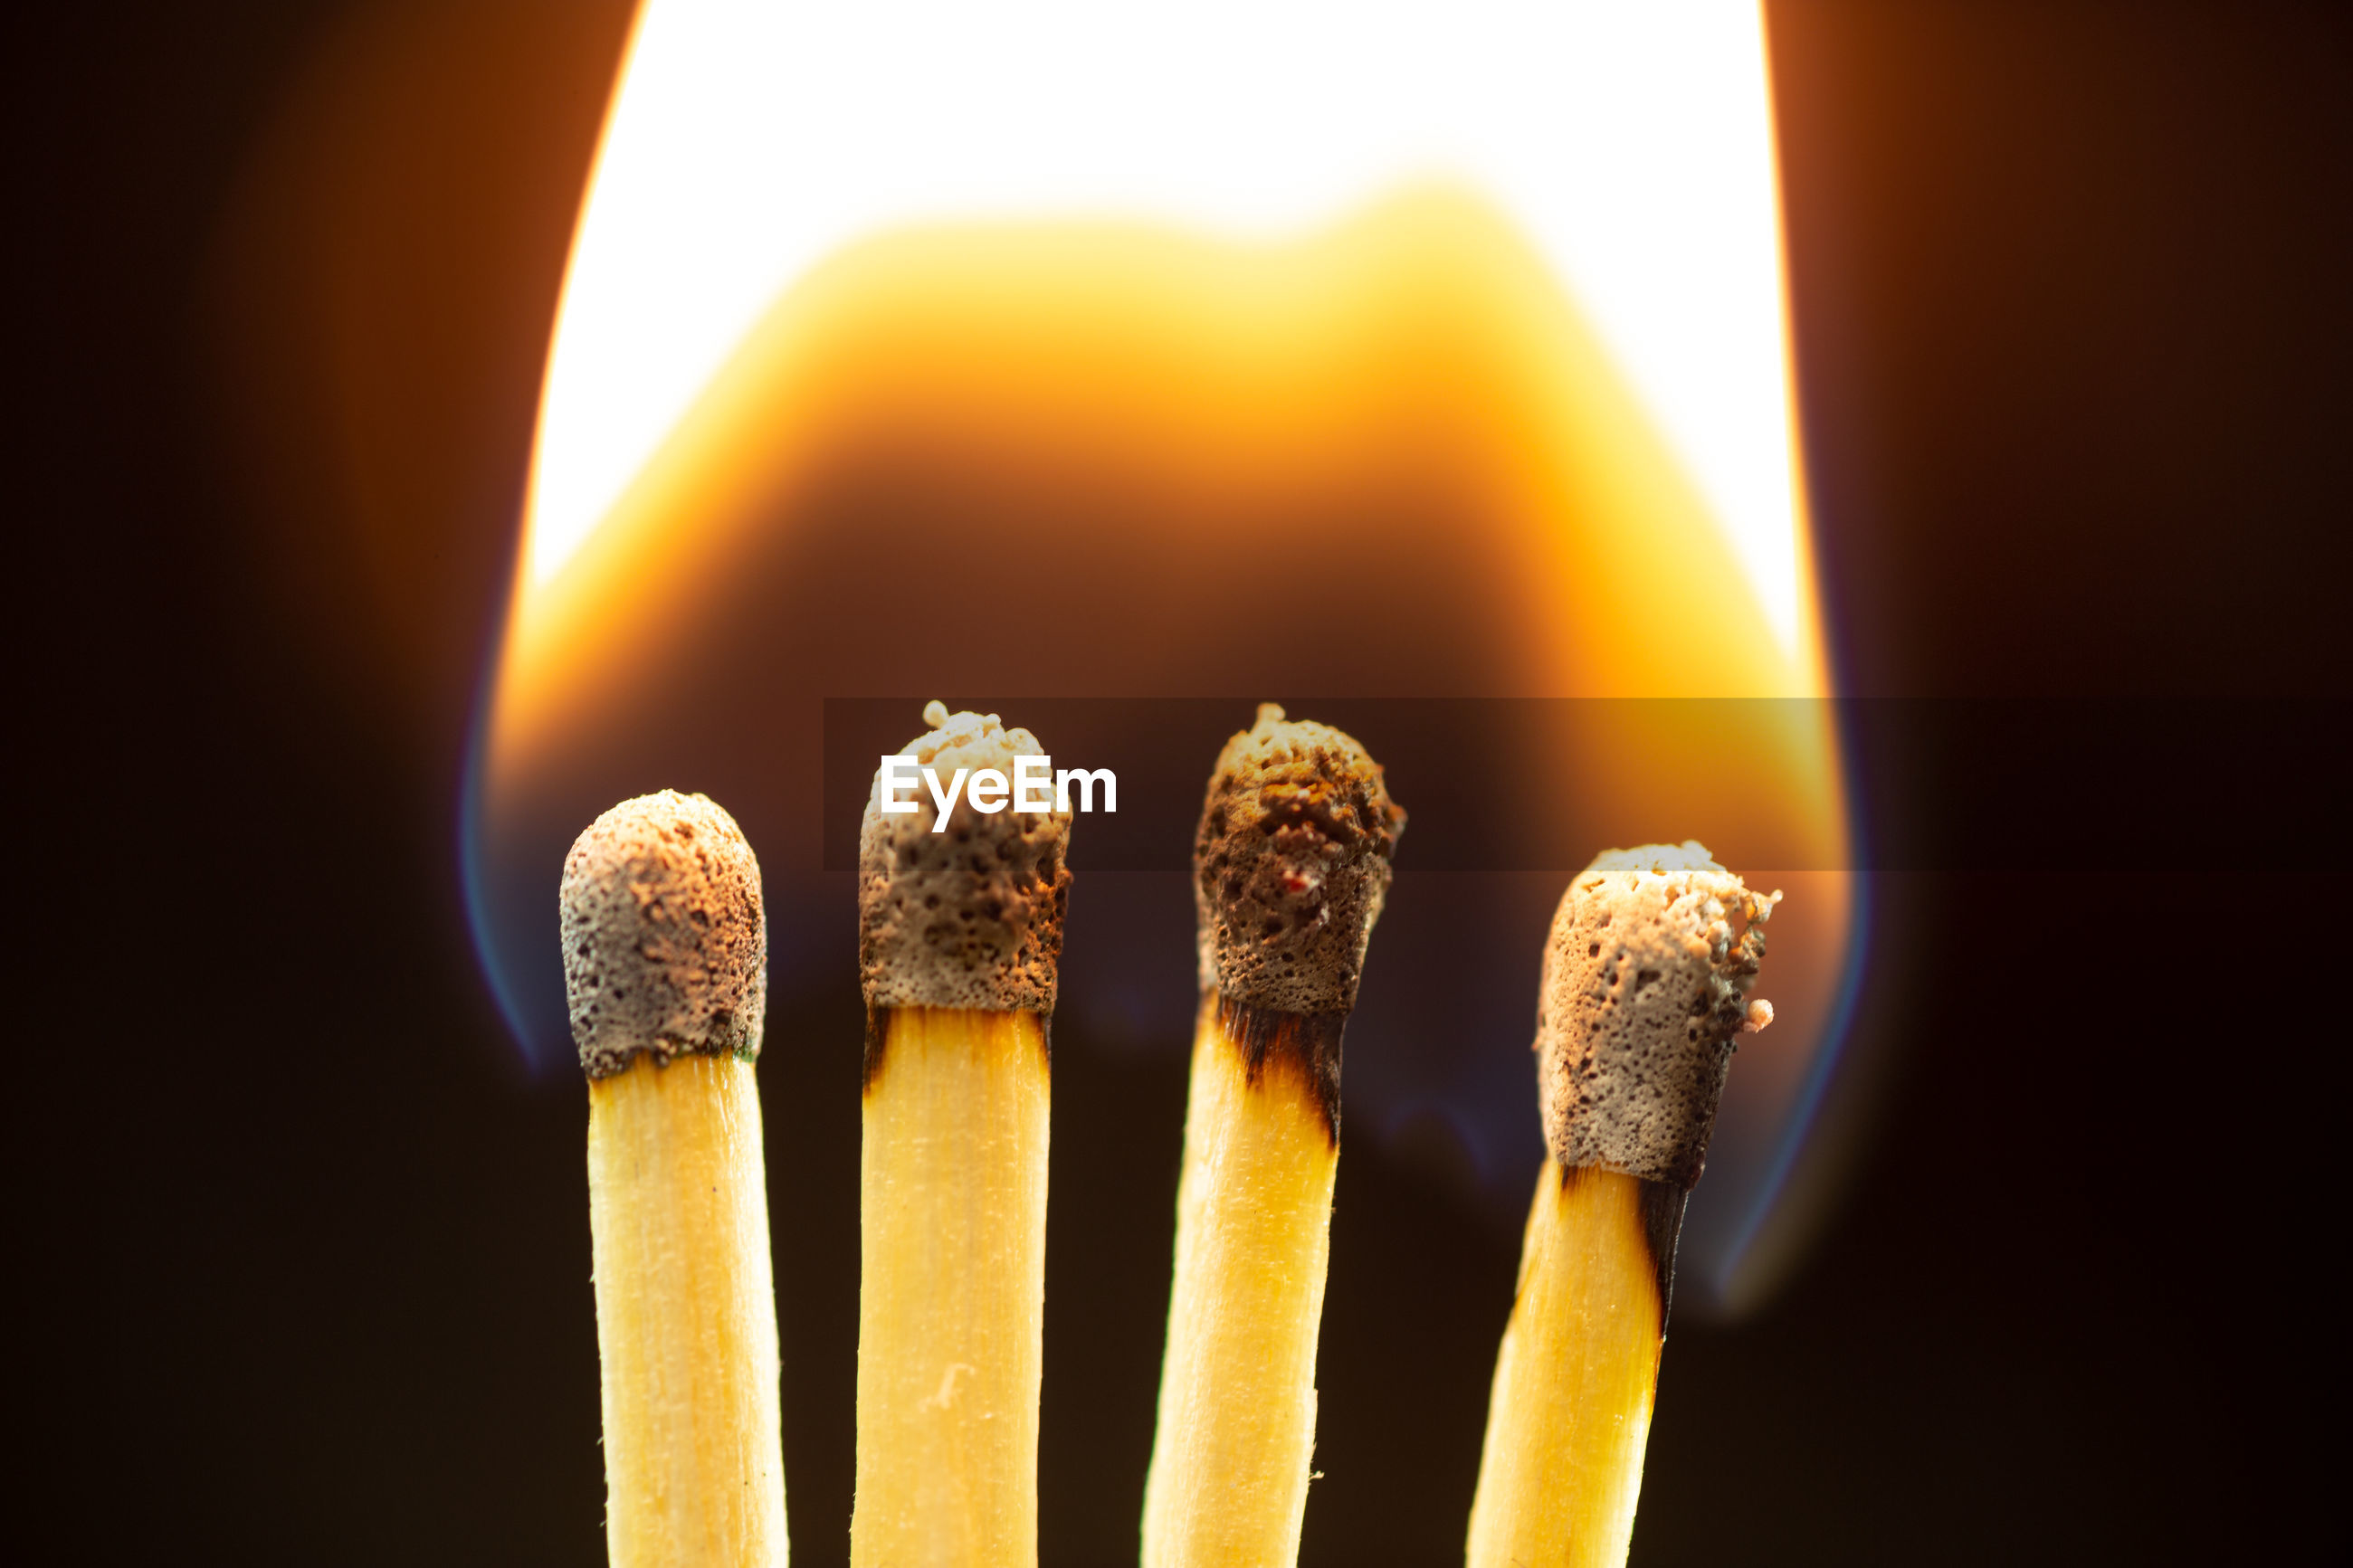 CLOSE-UP OF BURNING CANDLES ON WOOD AGAINST BLACK BACKGROUND